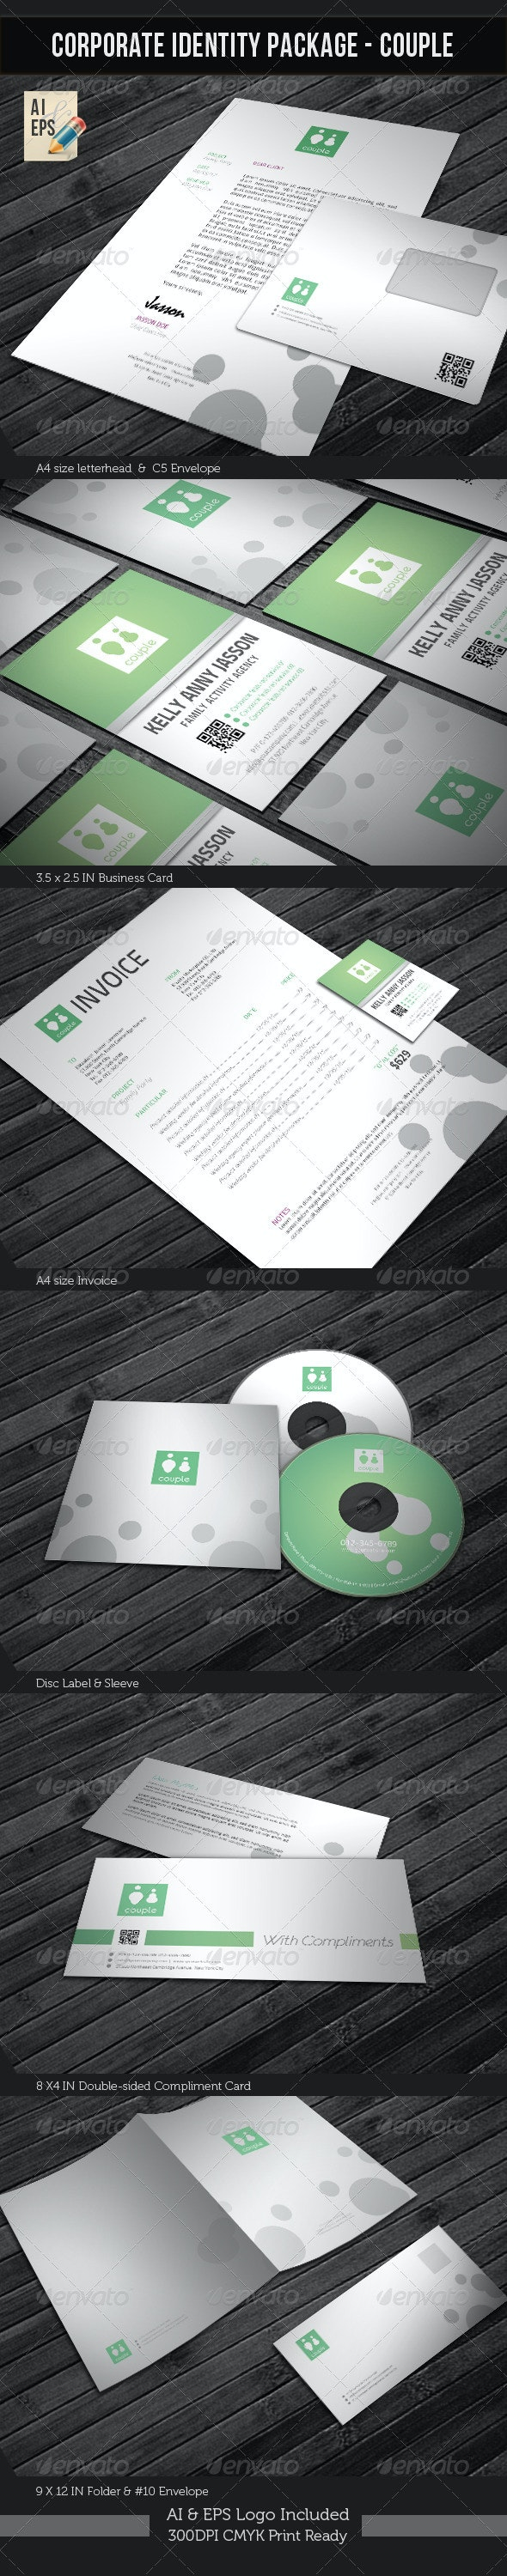 Corporate Identity Package - Couple - Stationery Print Templates